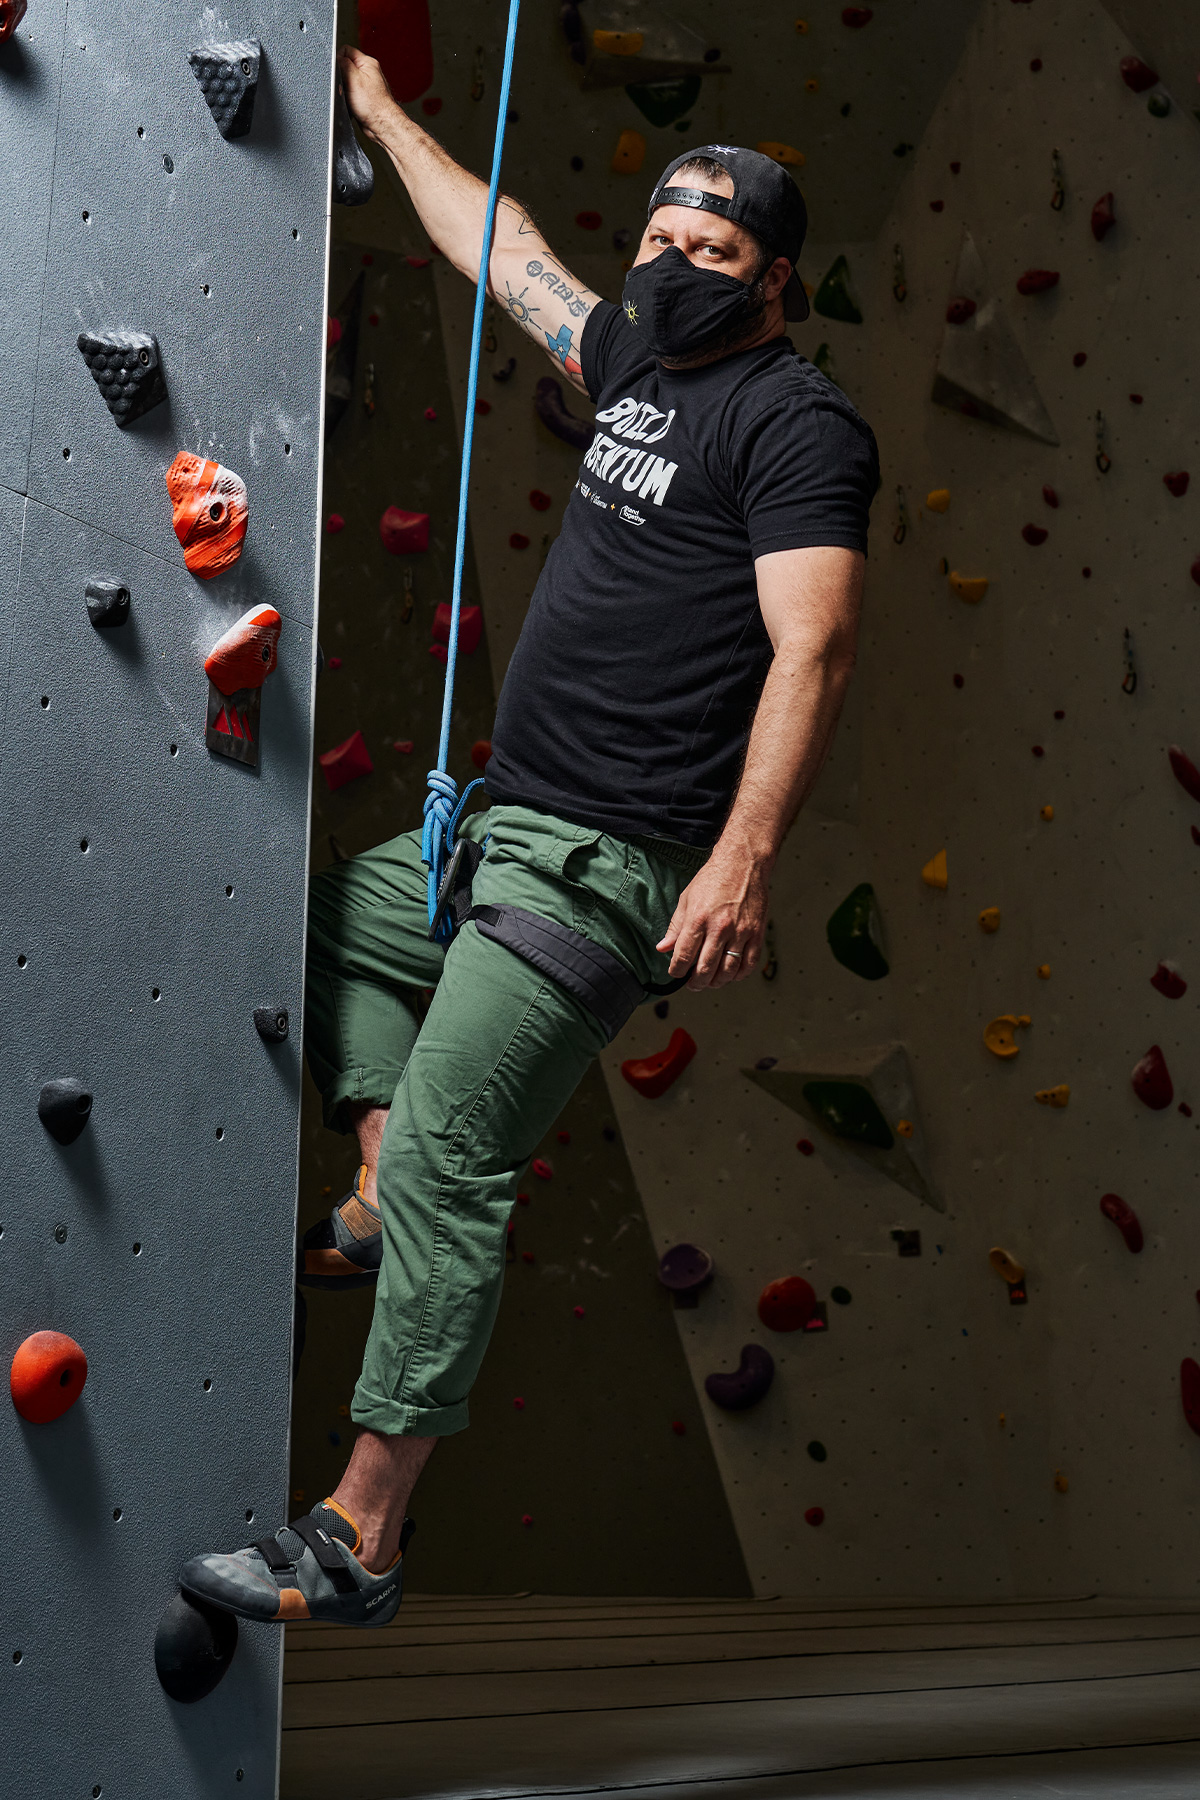 Chad Houser of Cafe Momentum rock climbing